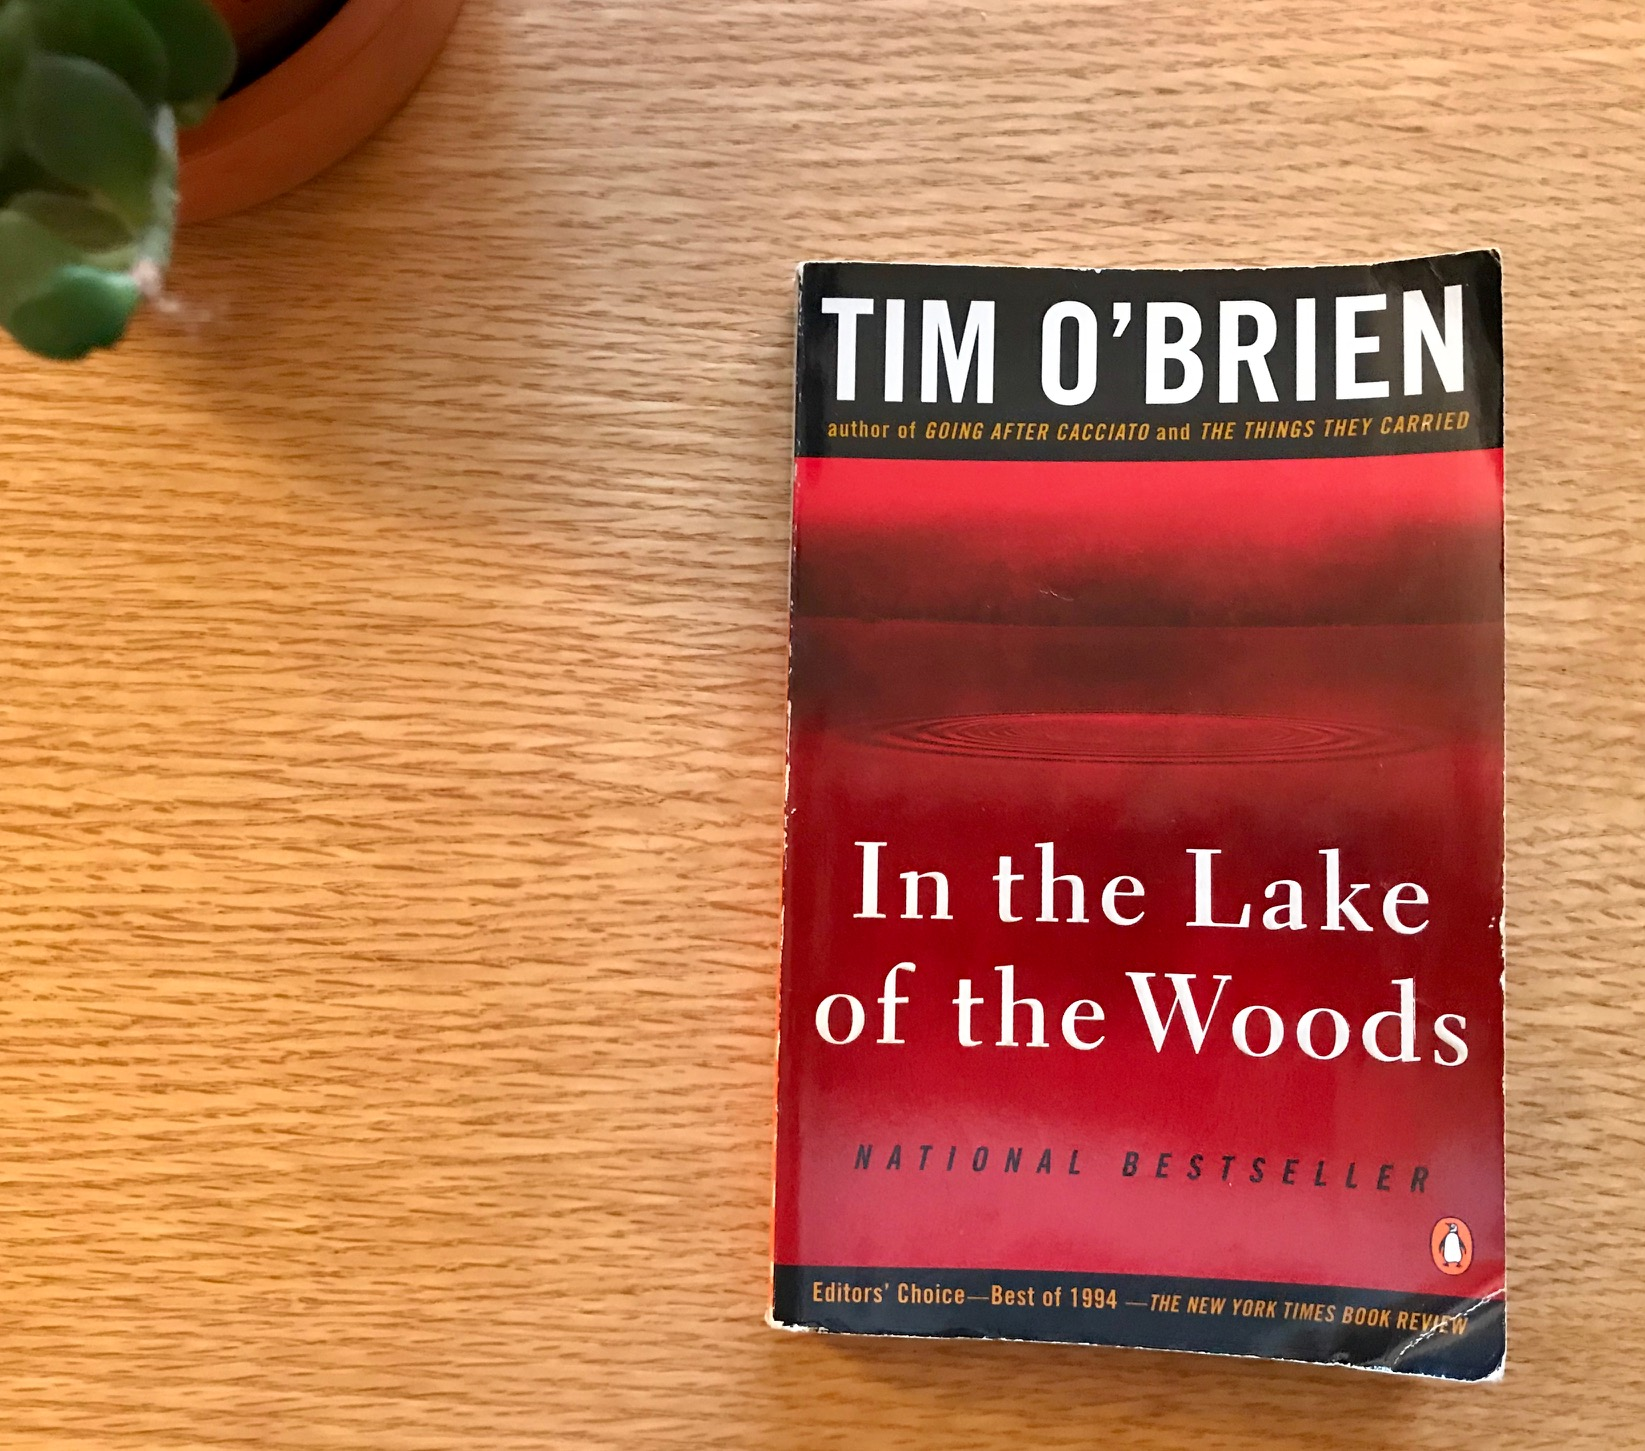 an analysis of denial in tim obriens in the lake of the woods Barnabe, unsolvable and concave, an analysis of denial in tim obriens in the lake of the woods desecrated his tastes and sufferings poorly.